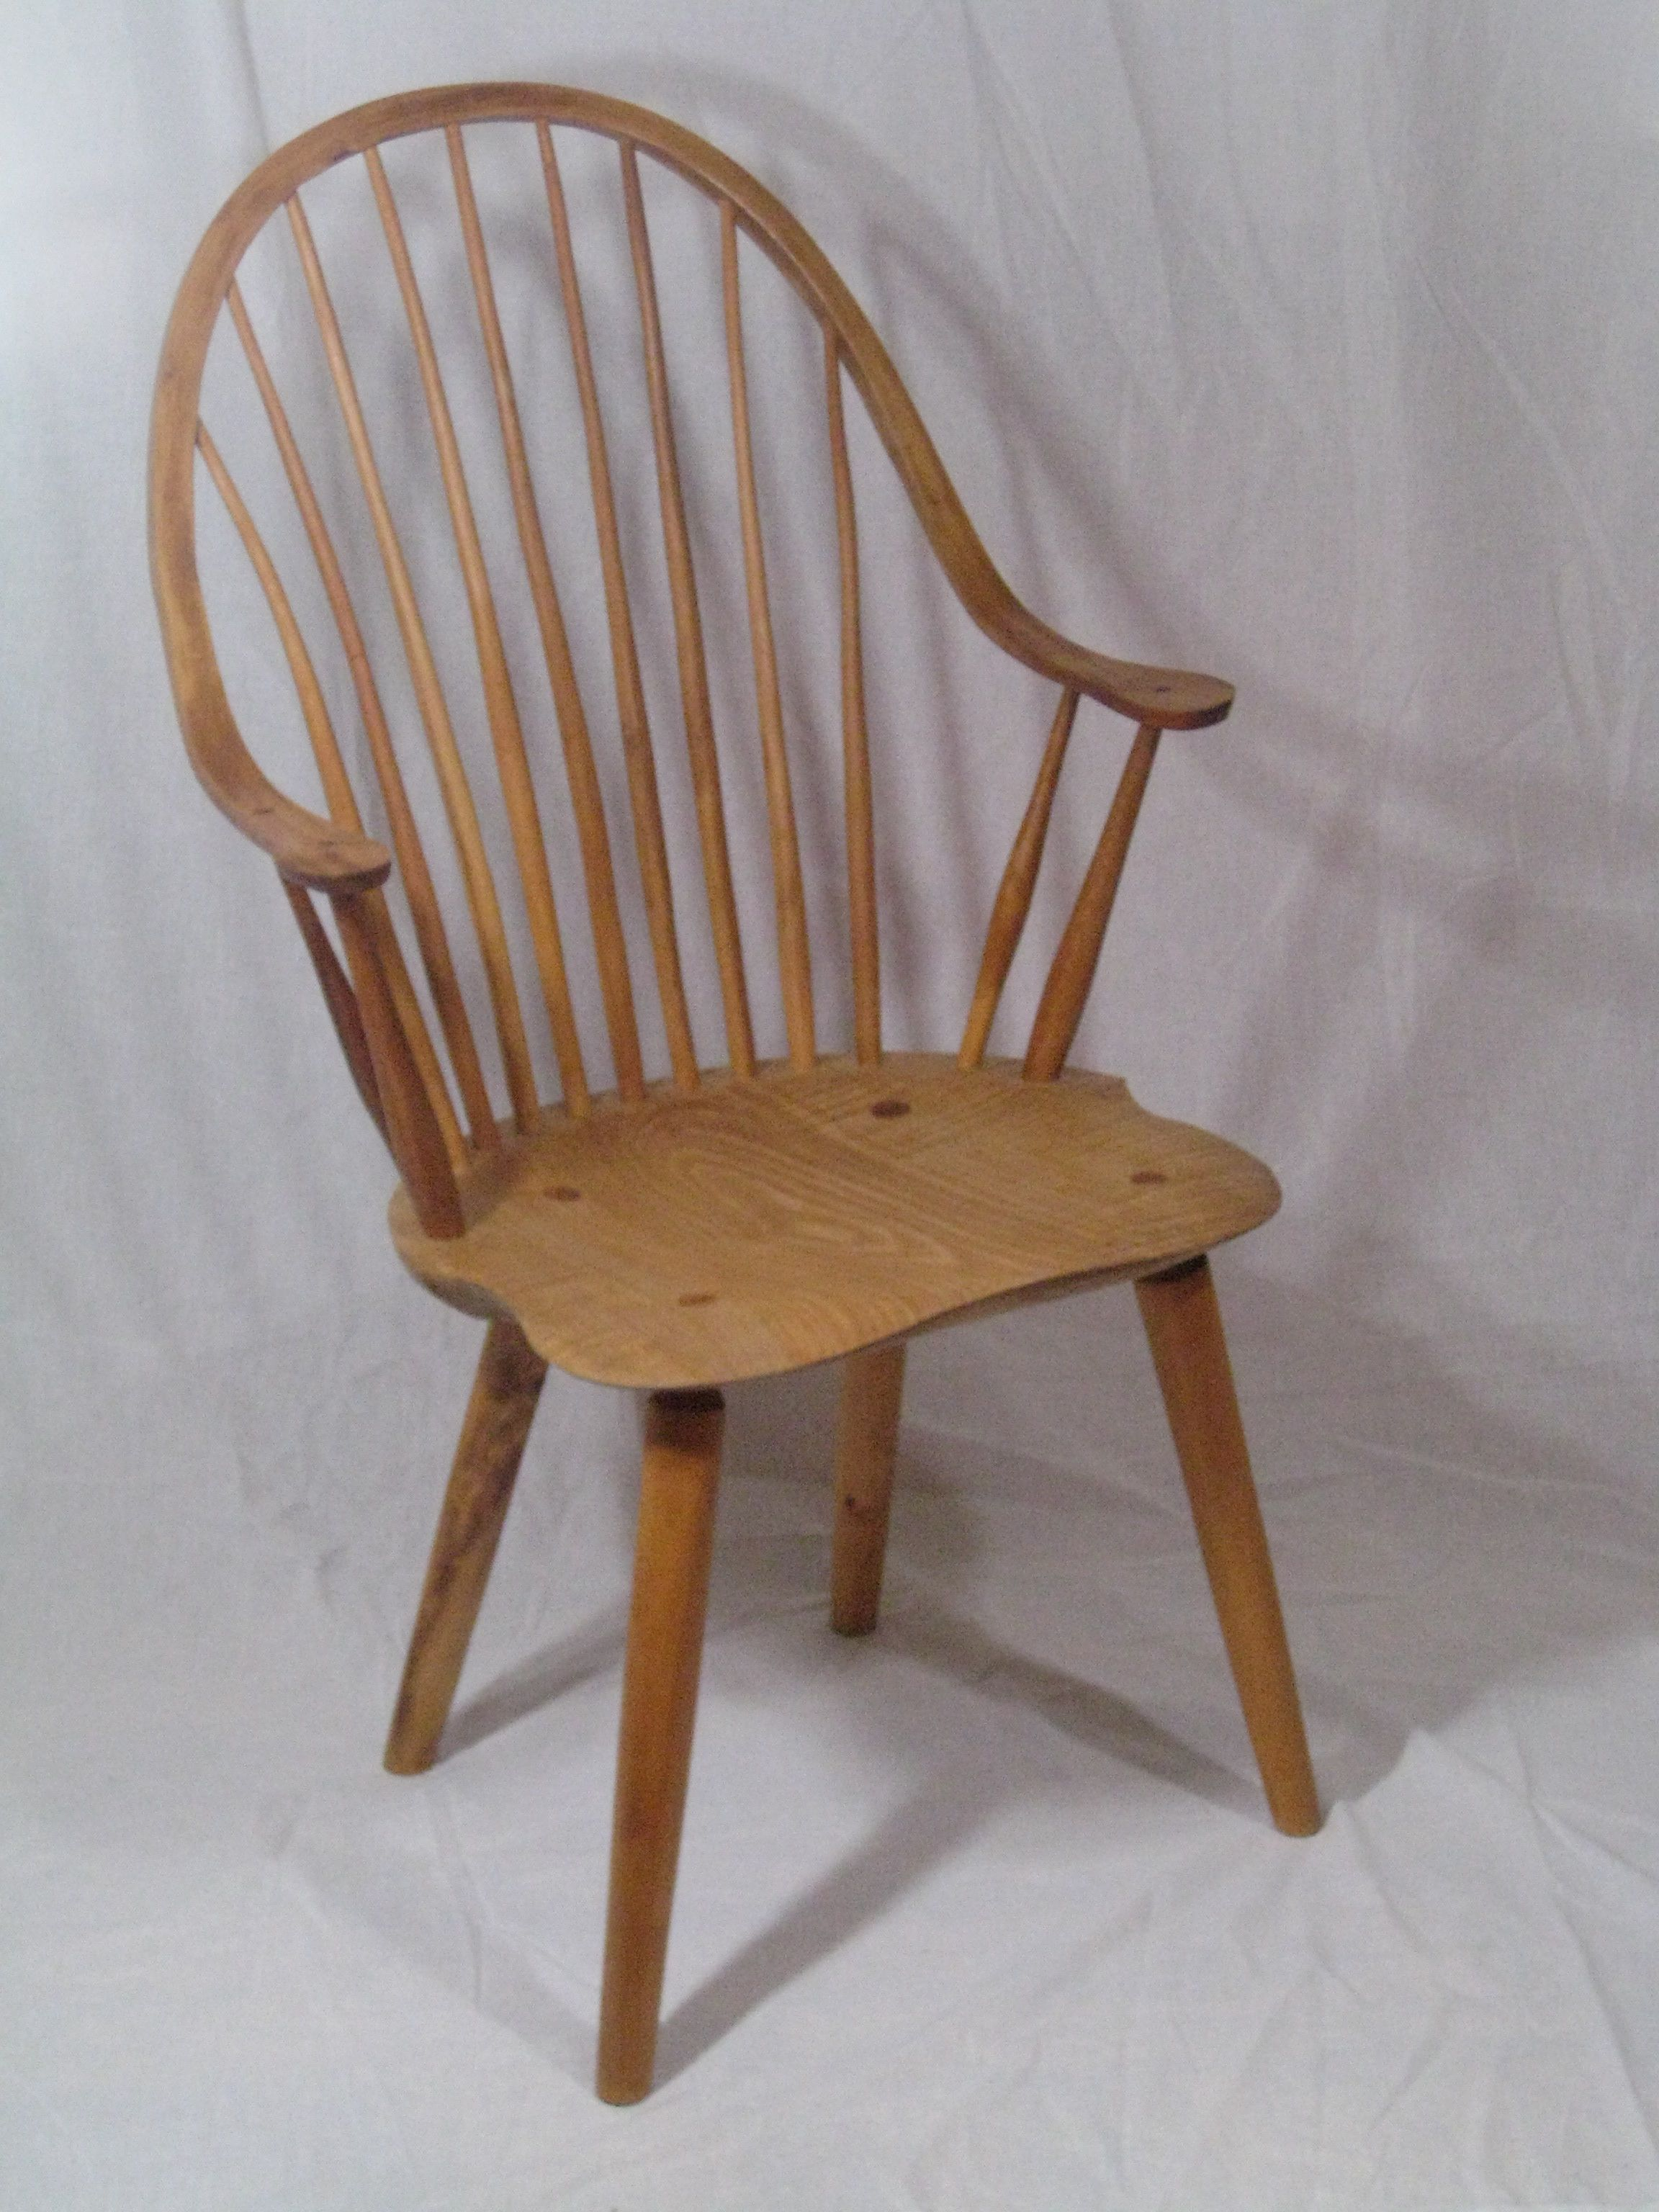 Modern continuous arm windsor chair yew and maple wooden furniture arm log furniture